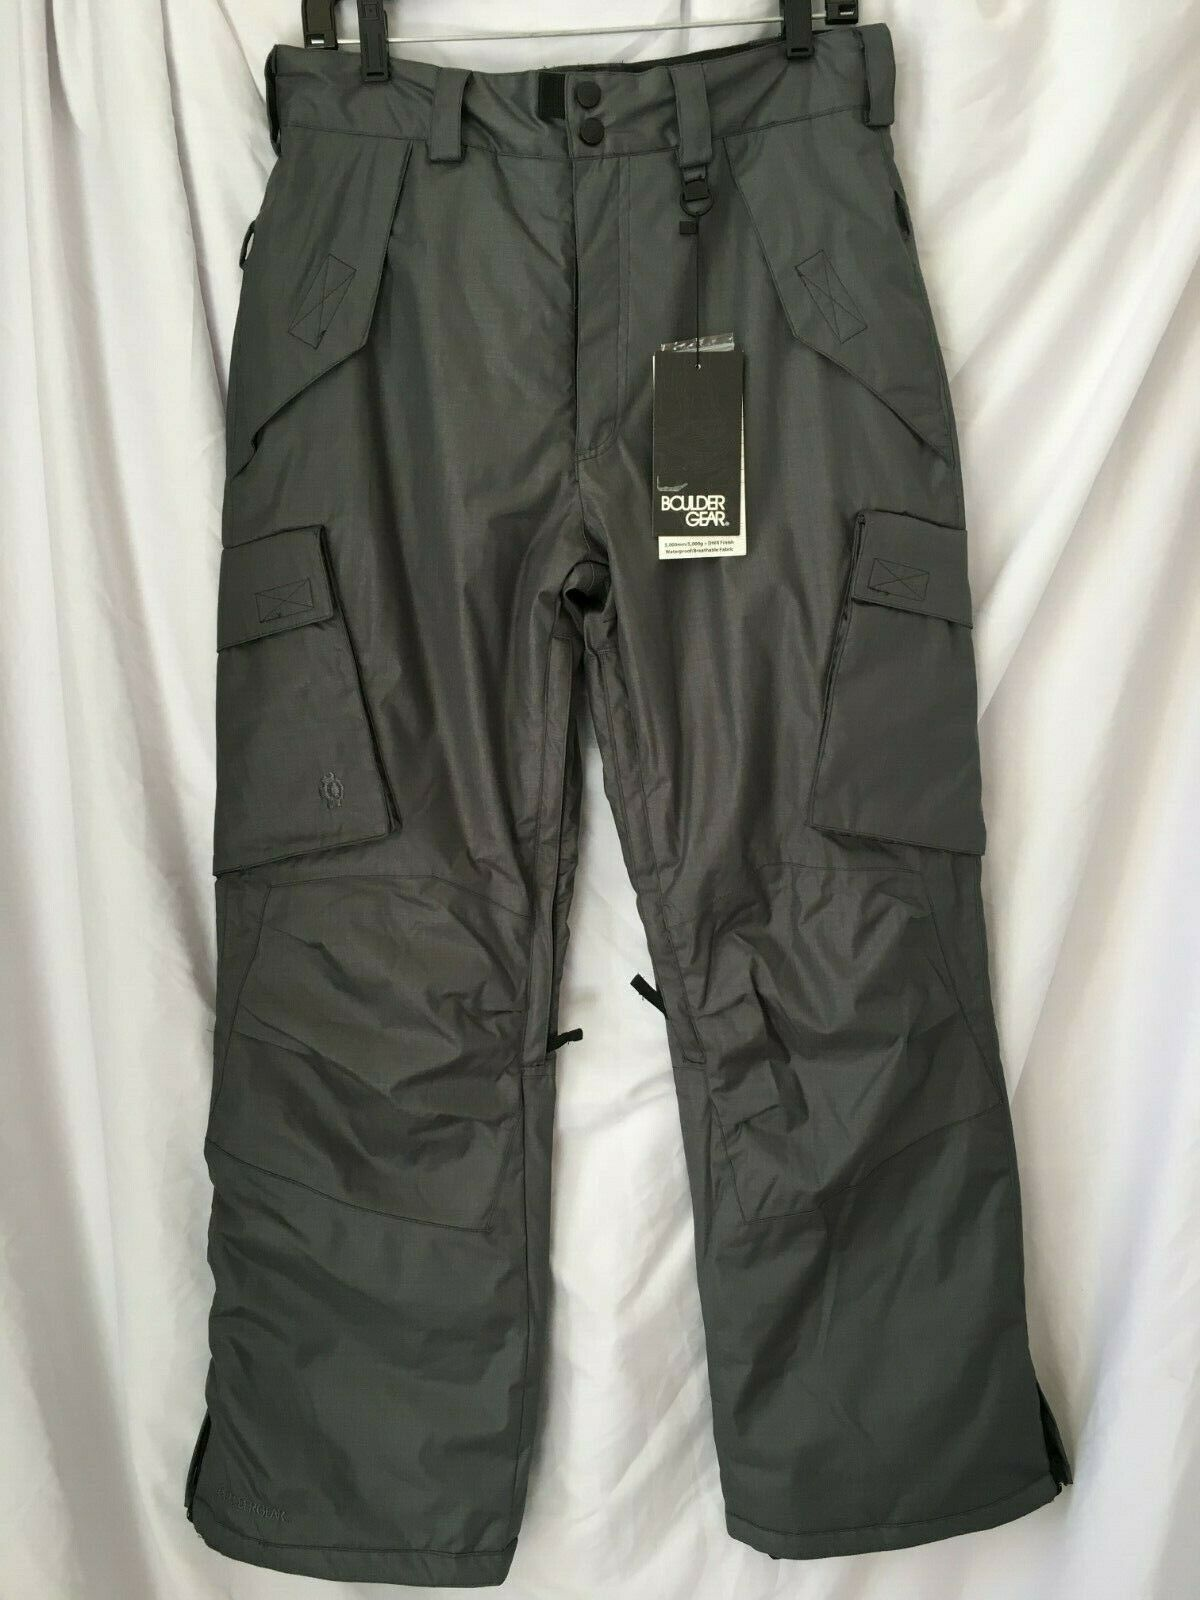 NEW Boulder Gear Men's Boulder Cargo Pant Ski Pants - Size S, color Steel